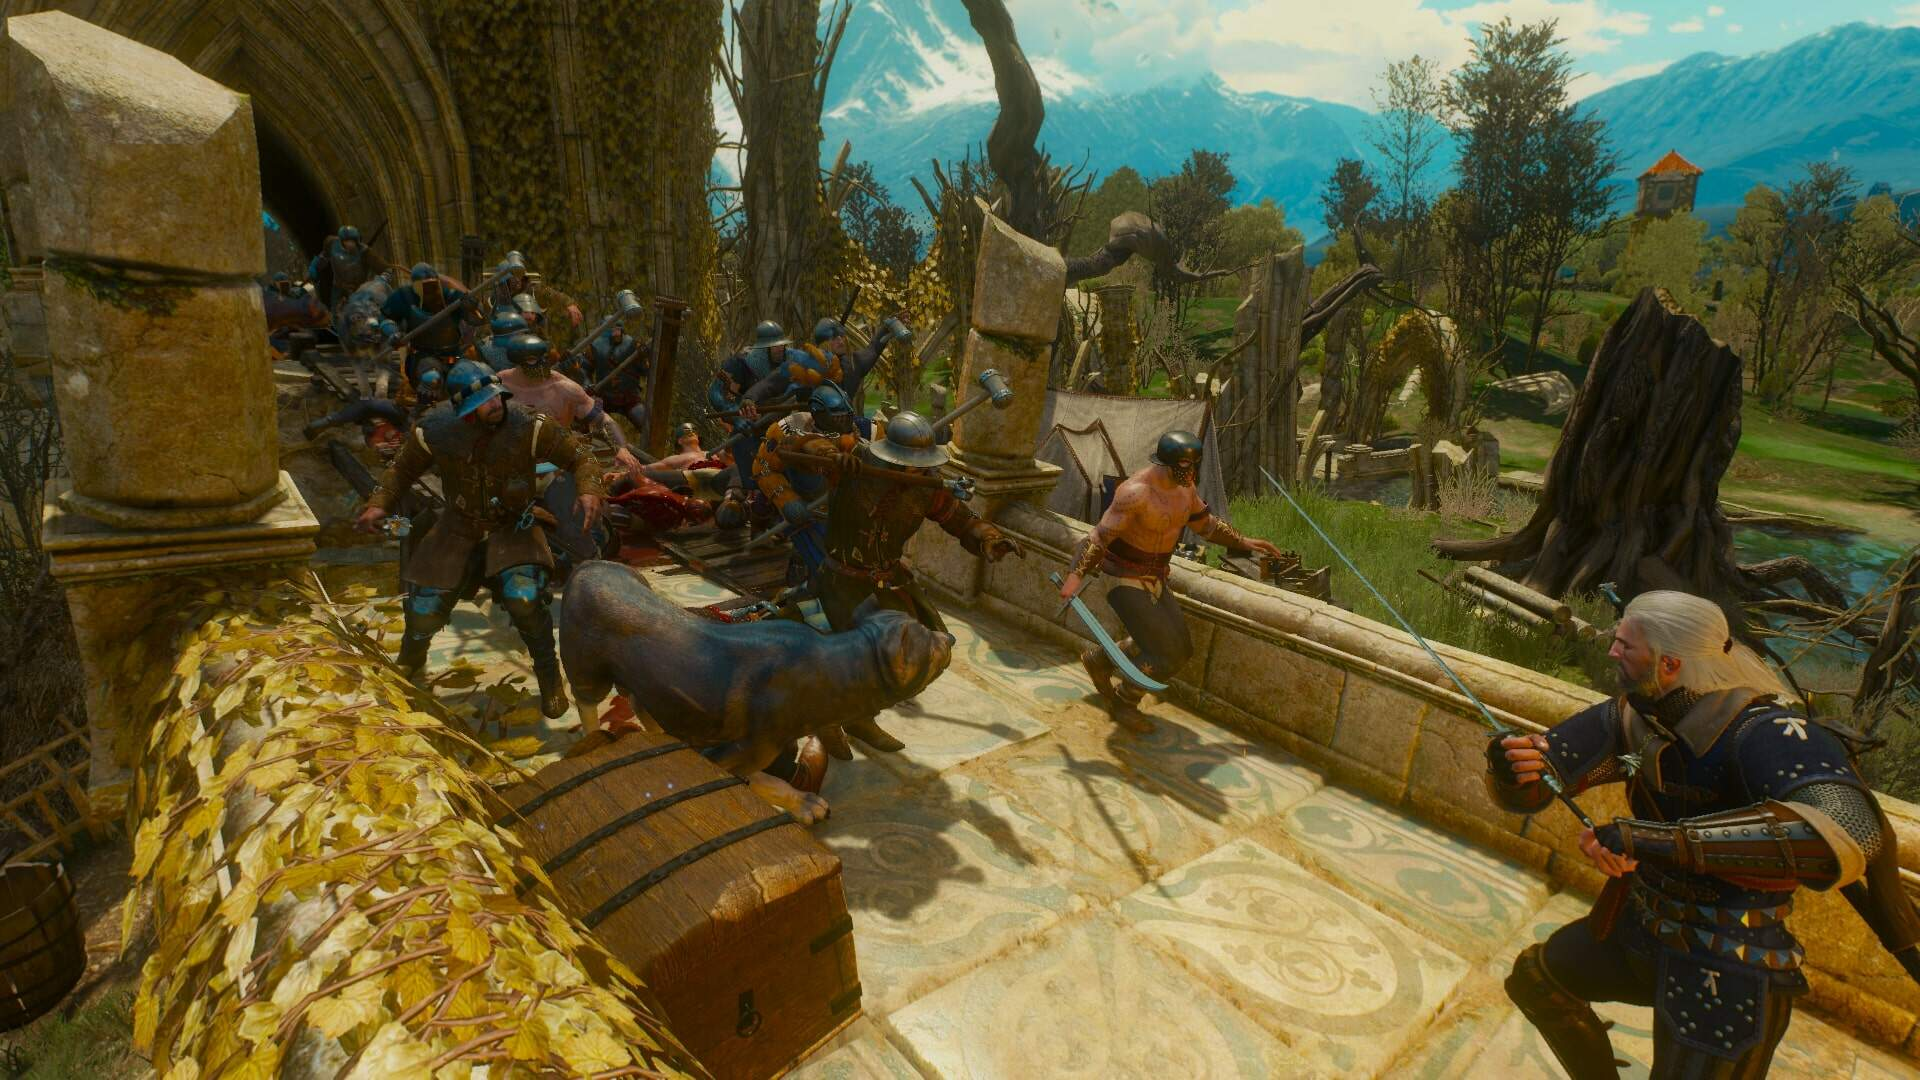 Witcher 3 Blood and Wine: How to Farm Gold Fast